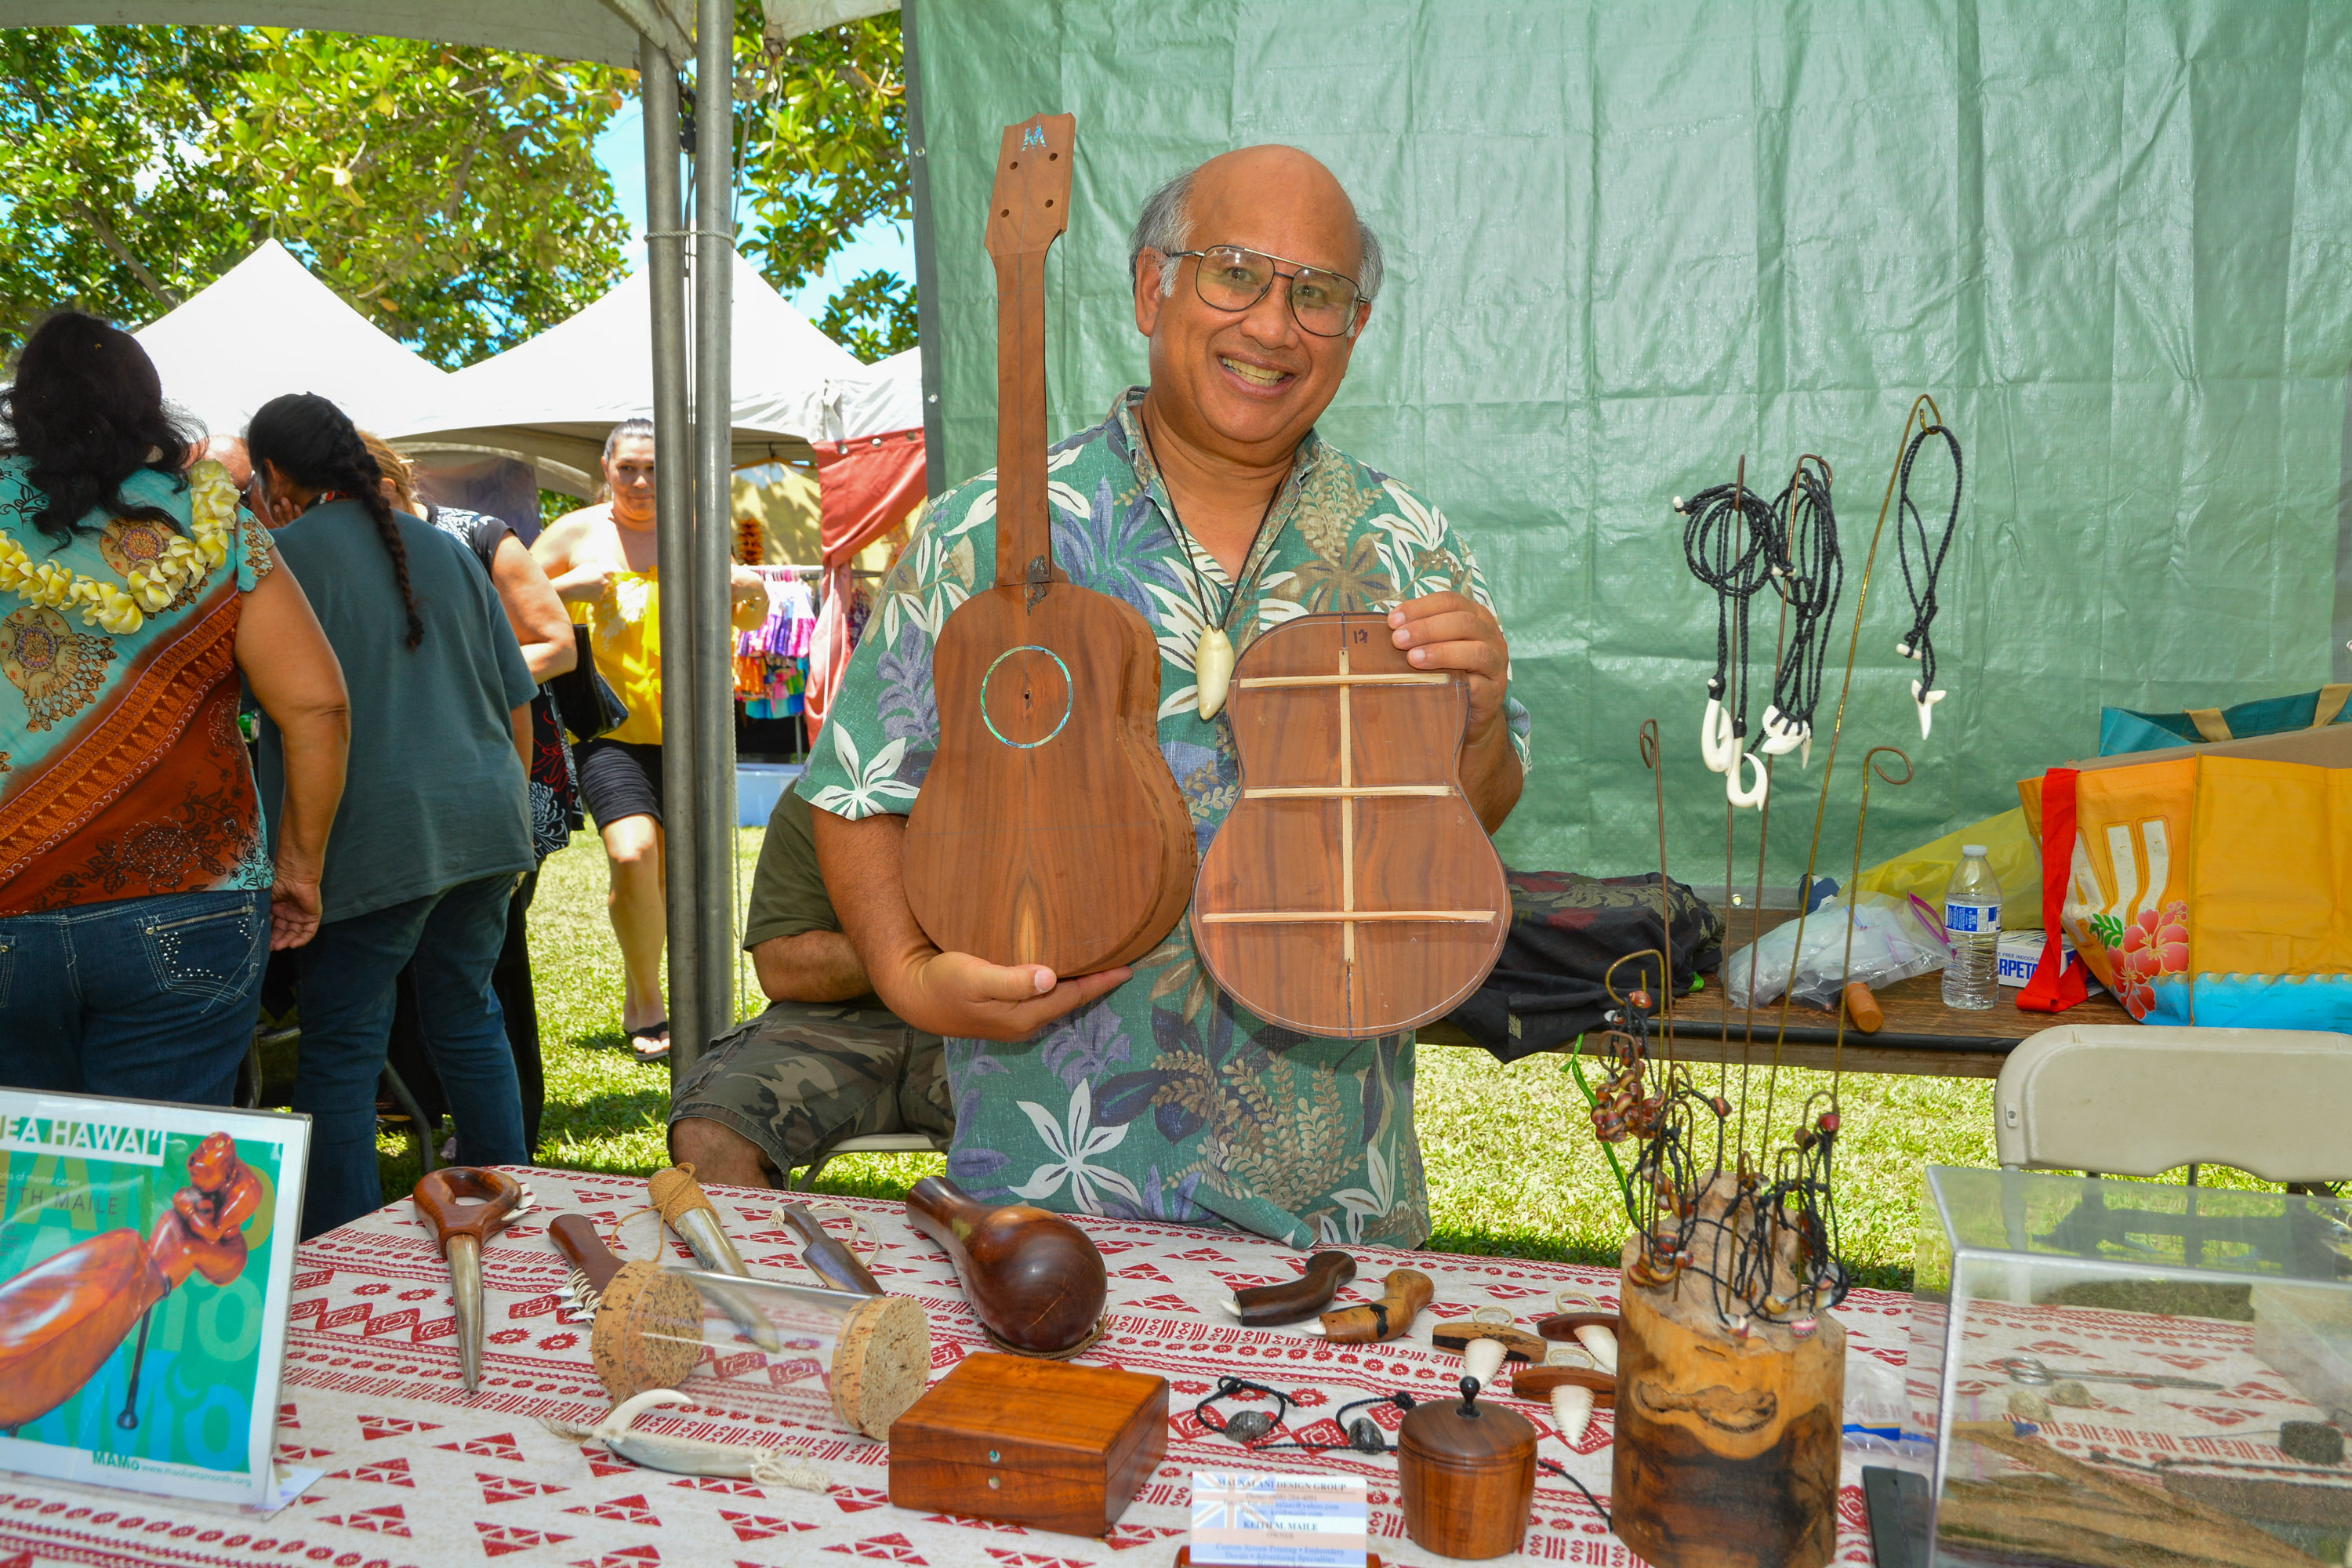 Cultural practitioner Keith Maile demonstrates ukul